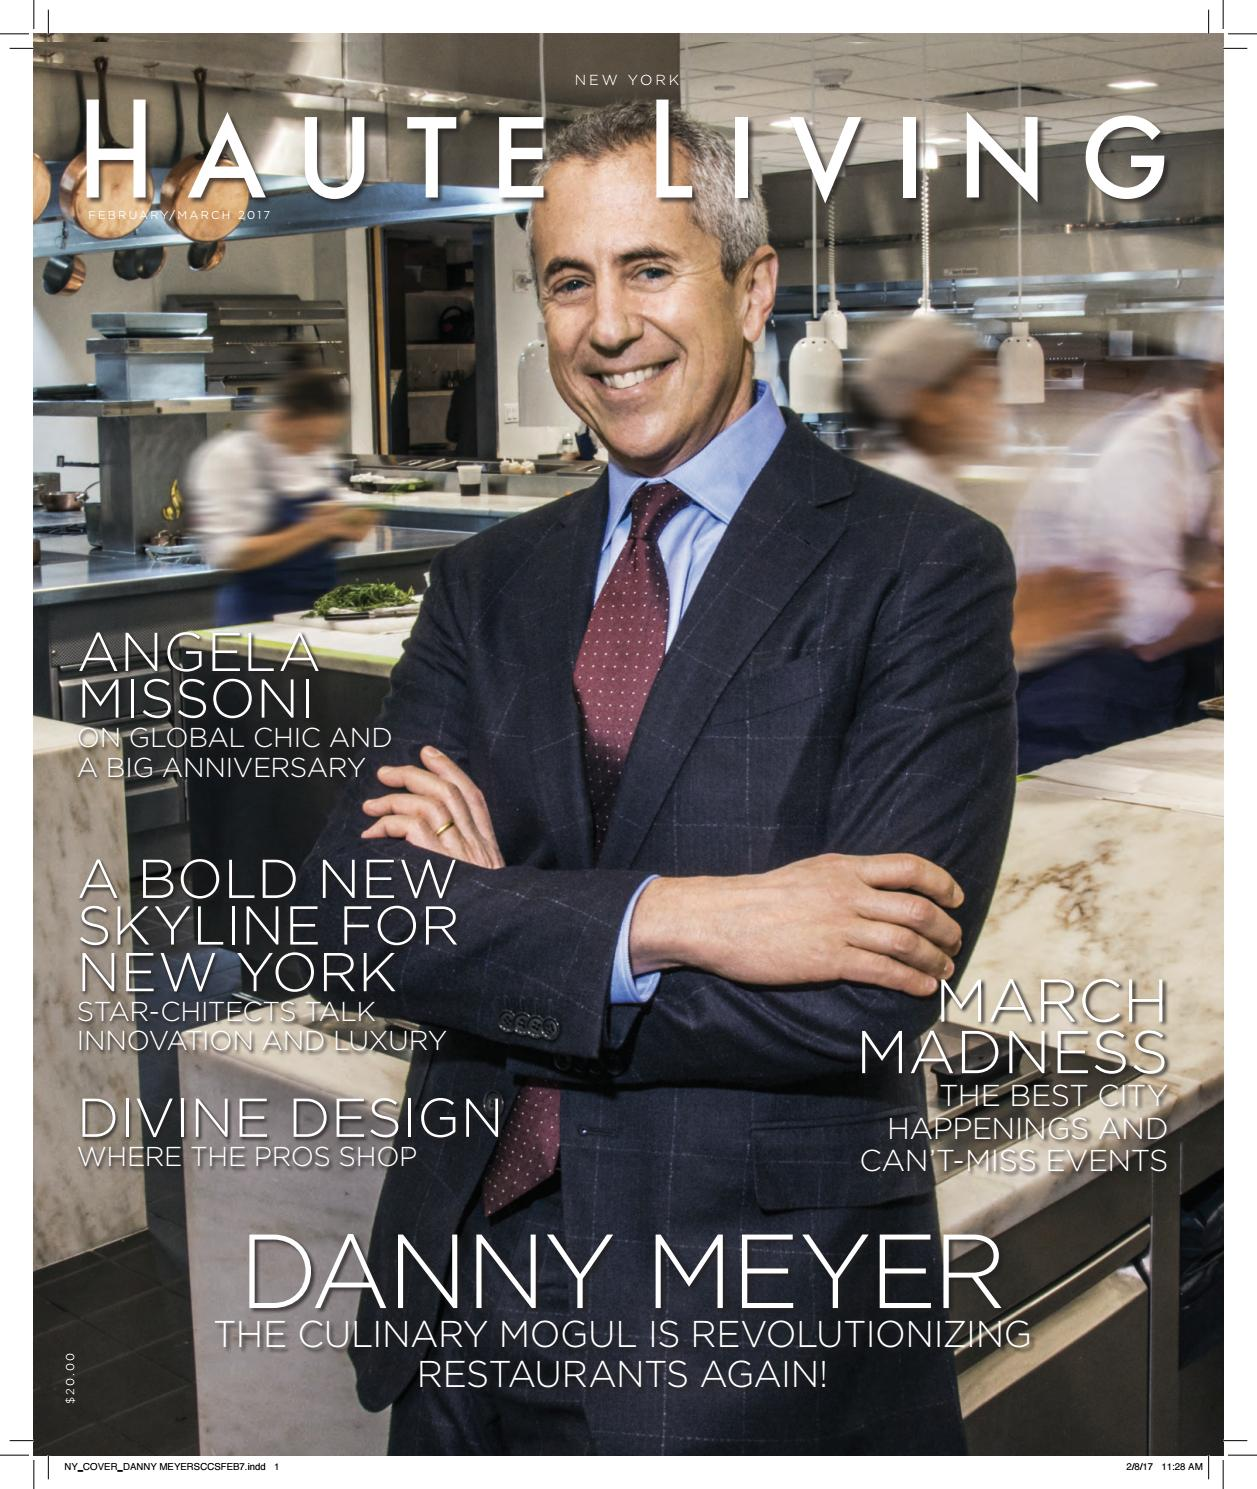 16e5ed440c25 NY FEBRUARY MARCH 2017 DANNY MEYER ISSUE by Haute Living - issuu